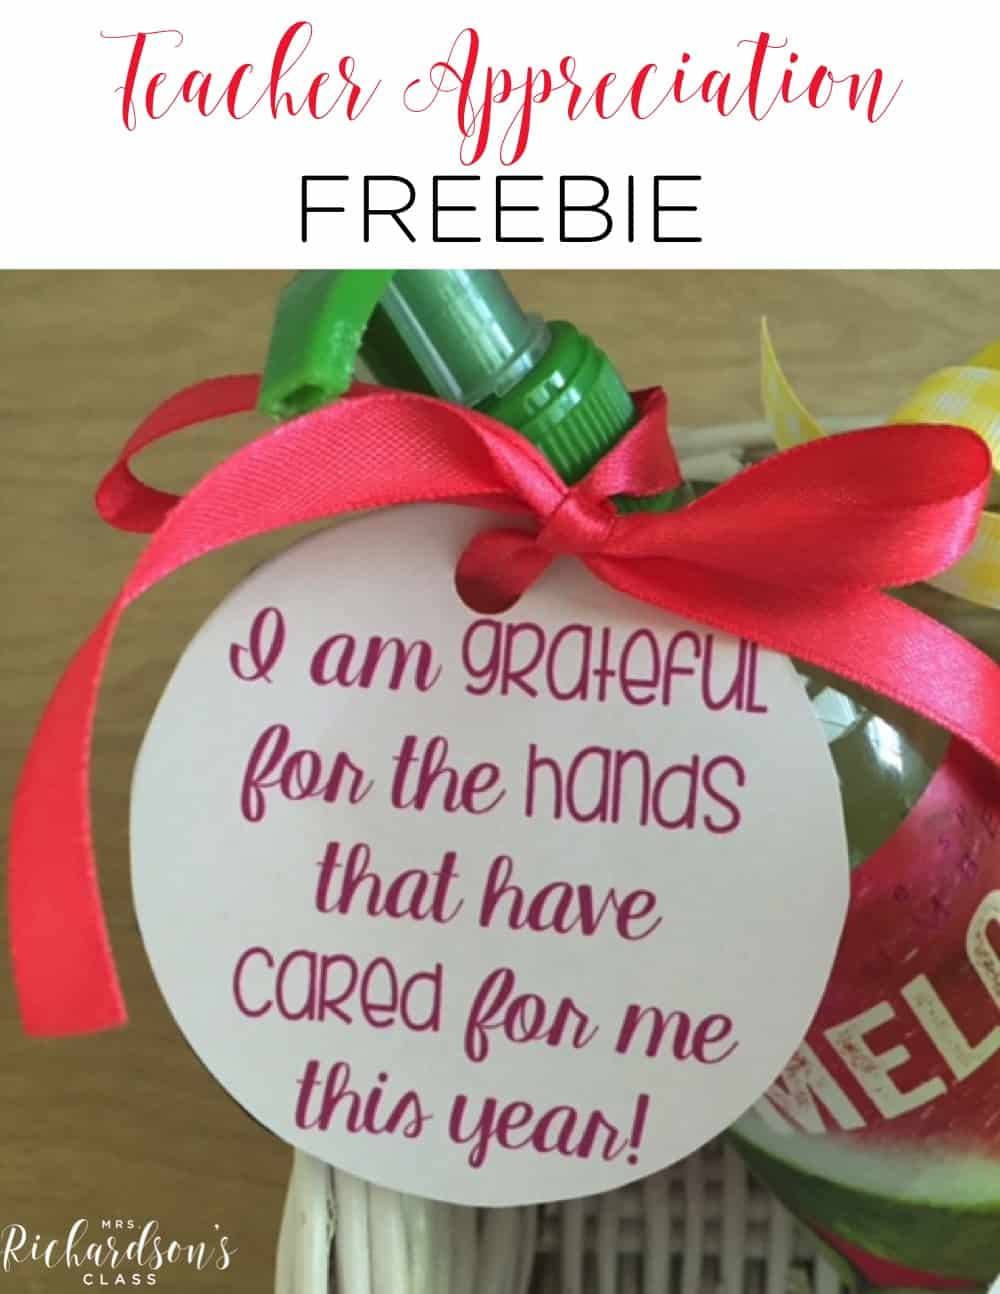 This FREE printable is perfect for teacher appreciation any time of year! What a simple and inexpensive idea that any teacher will love! #teacherapreciation #freebie #printable #teachergifts